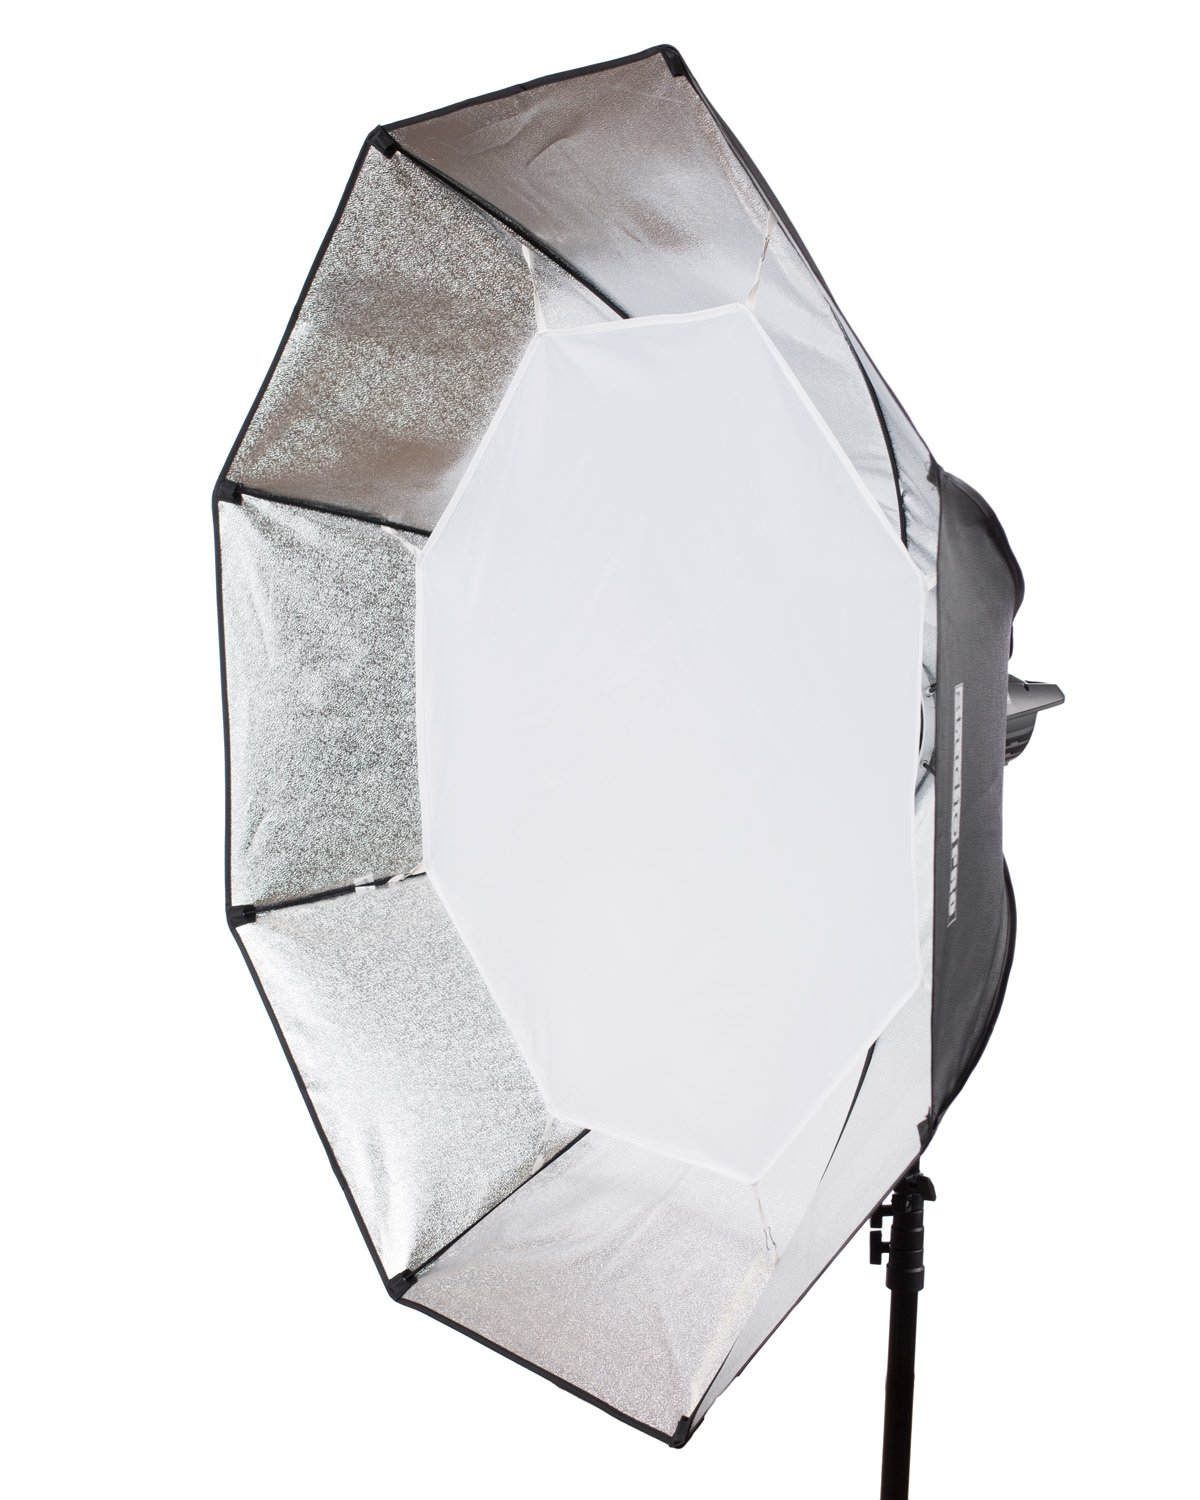 StudioPRO 68 Inch Octagon Softbox Photography Light Diffuser & Modifier with Bowens Speedring Mount For Monolight Photo Studio Strobe Lighting by Fovitec (Image #3)